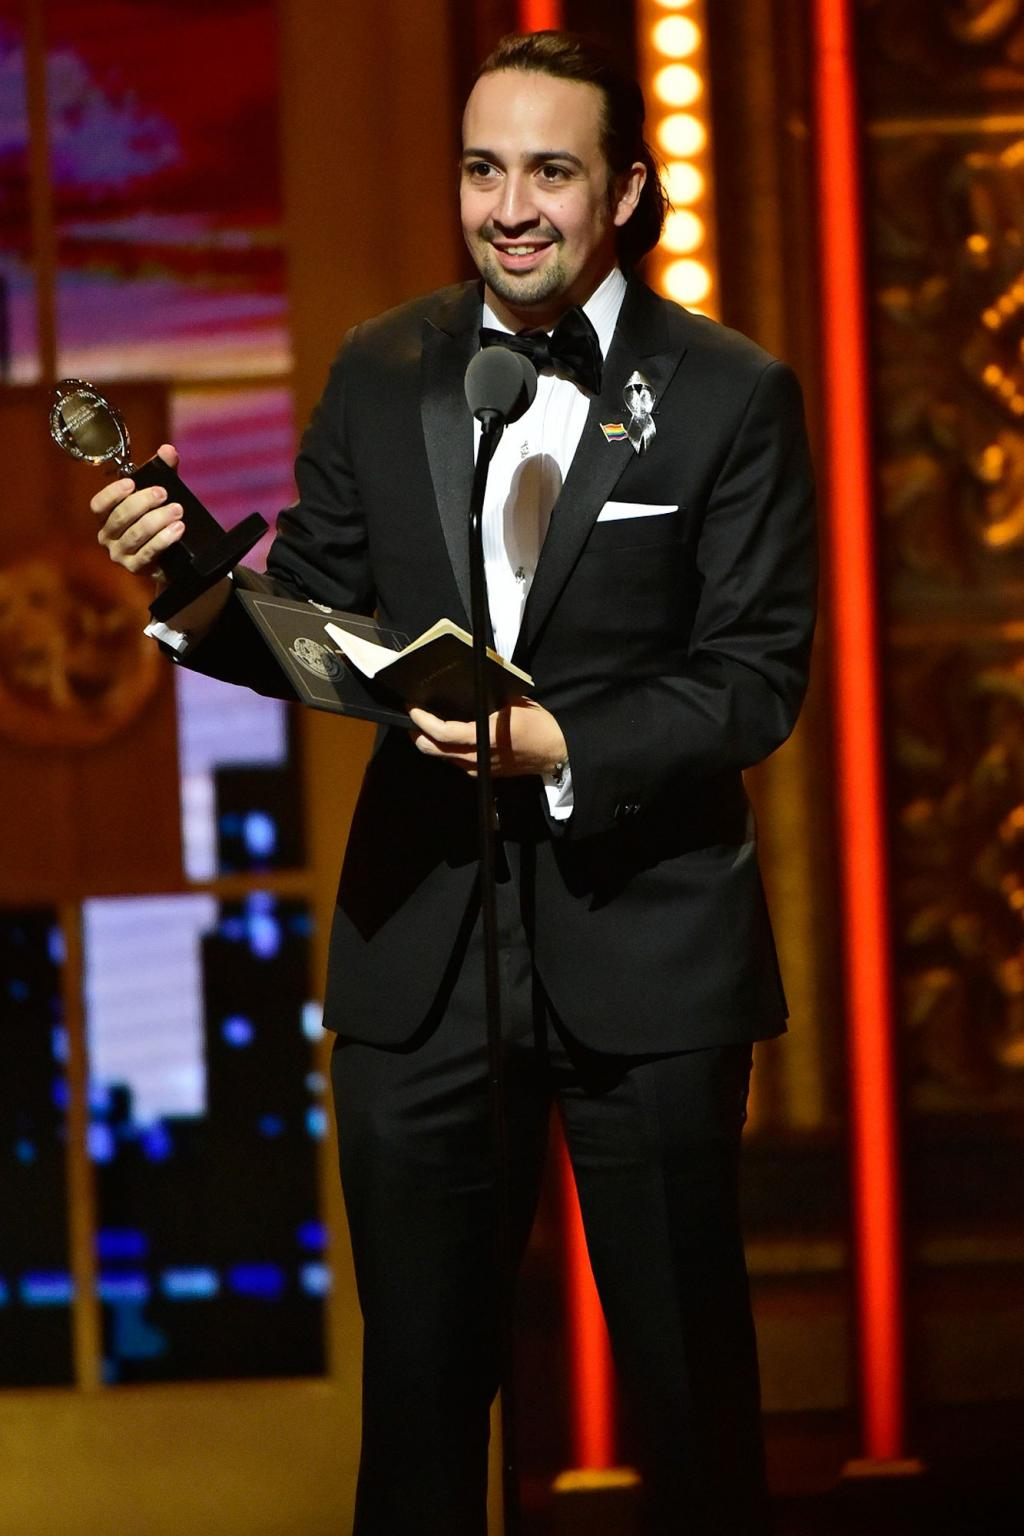 Lin-Manuel Miranda is One Step Away from History-Making EGOT with Oscar Nomination for Moana